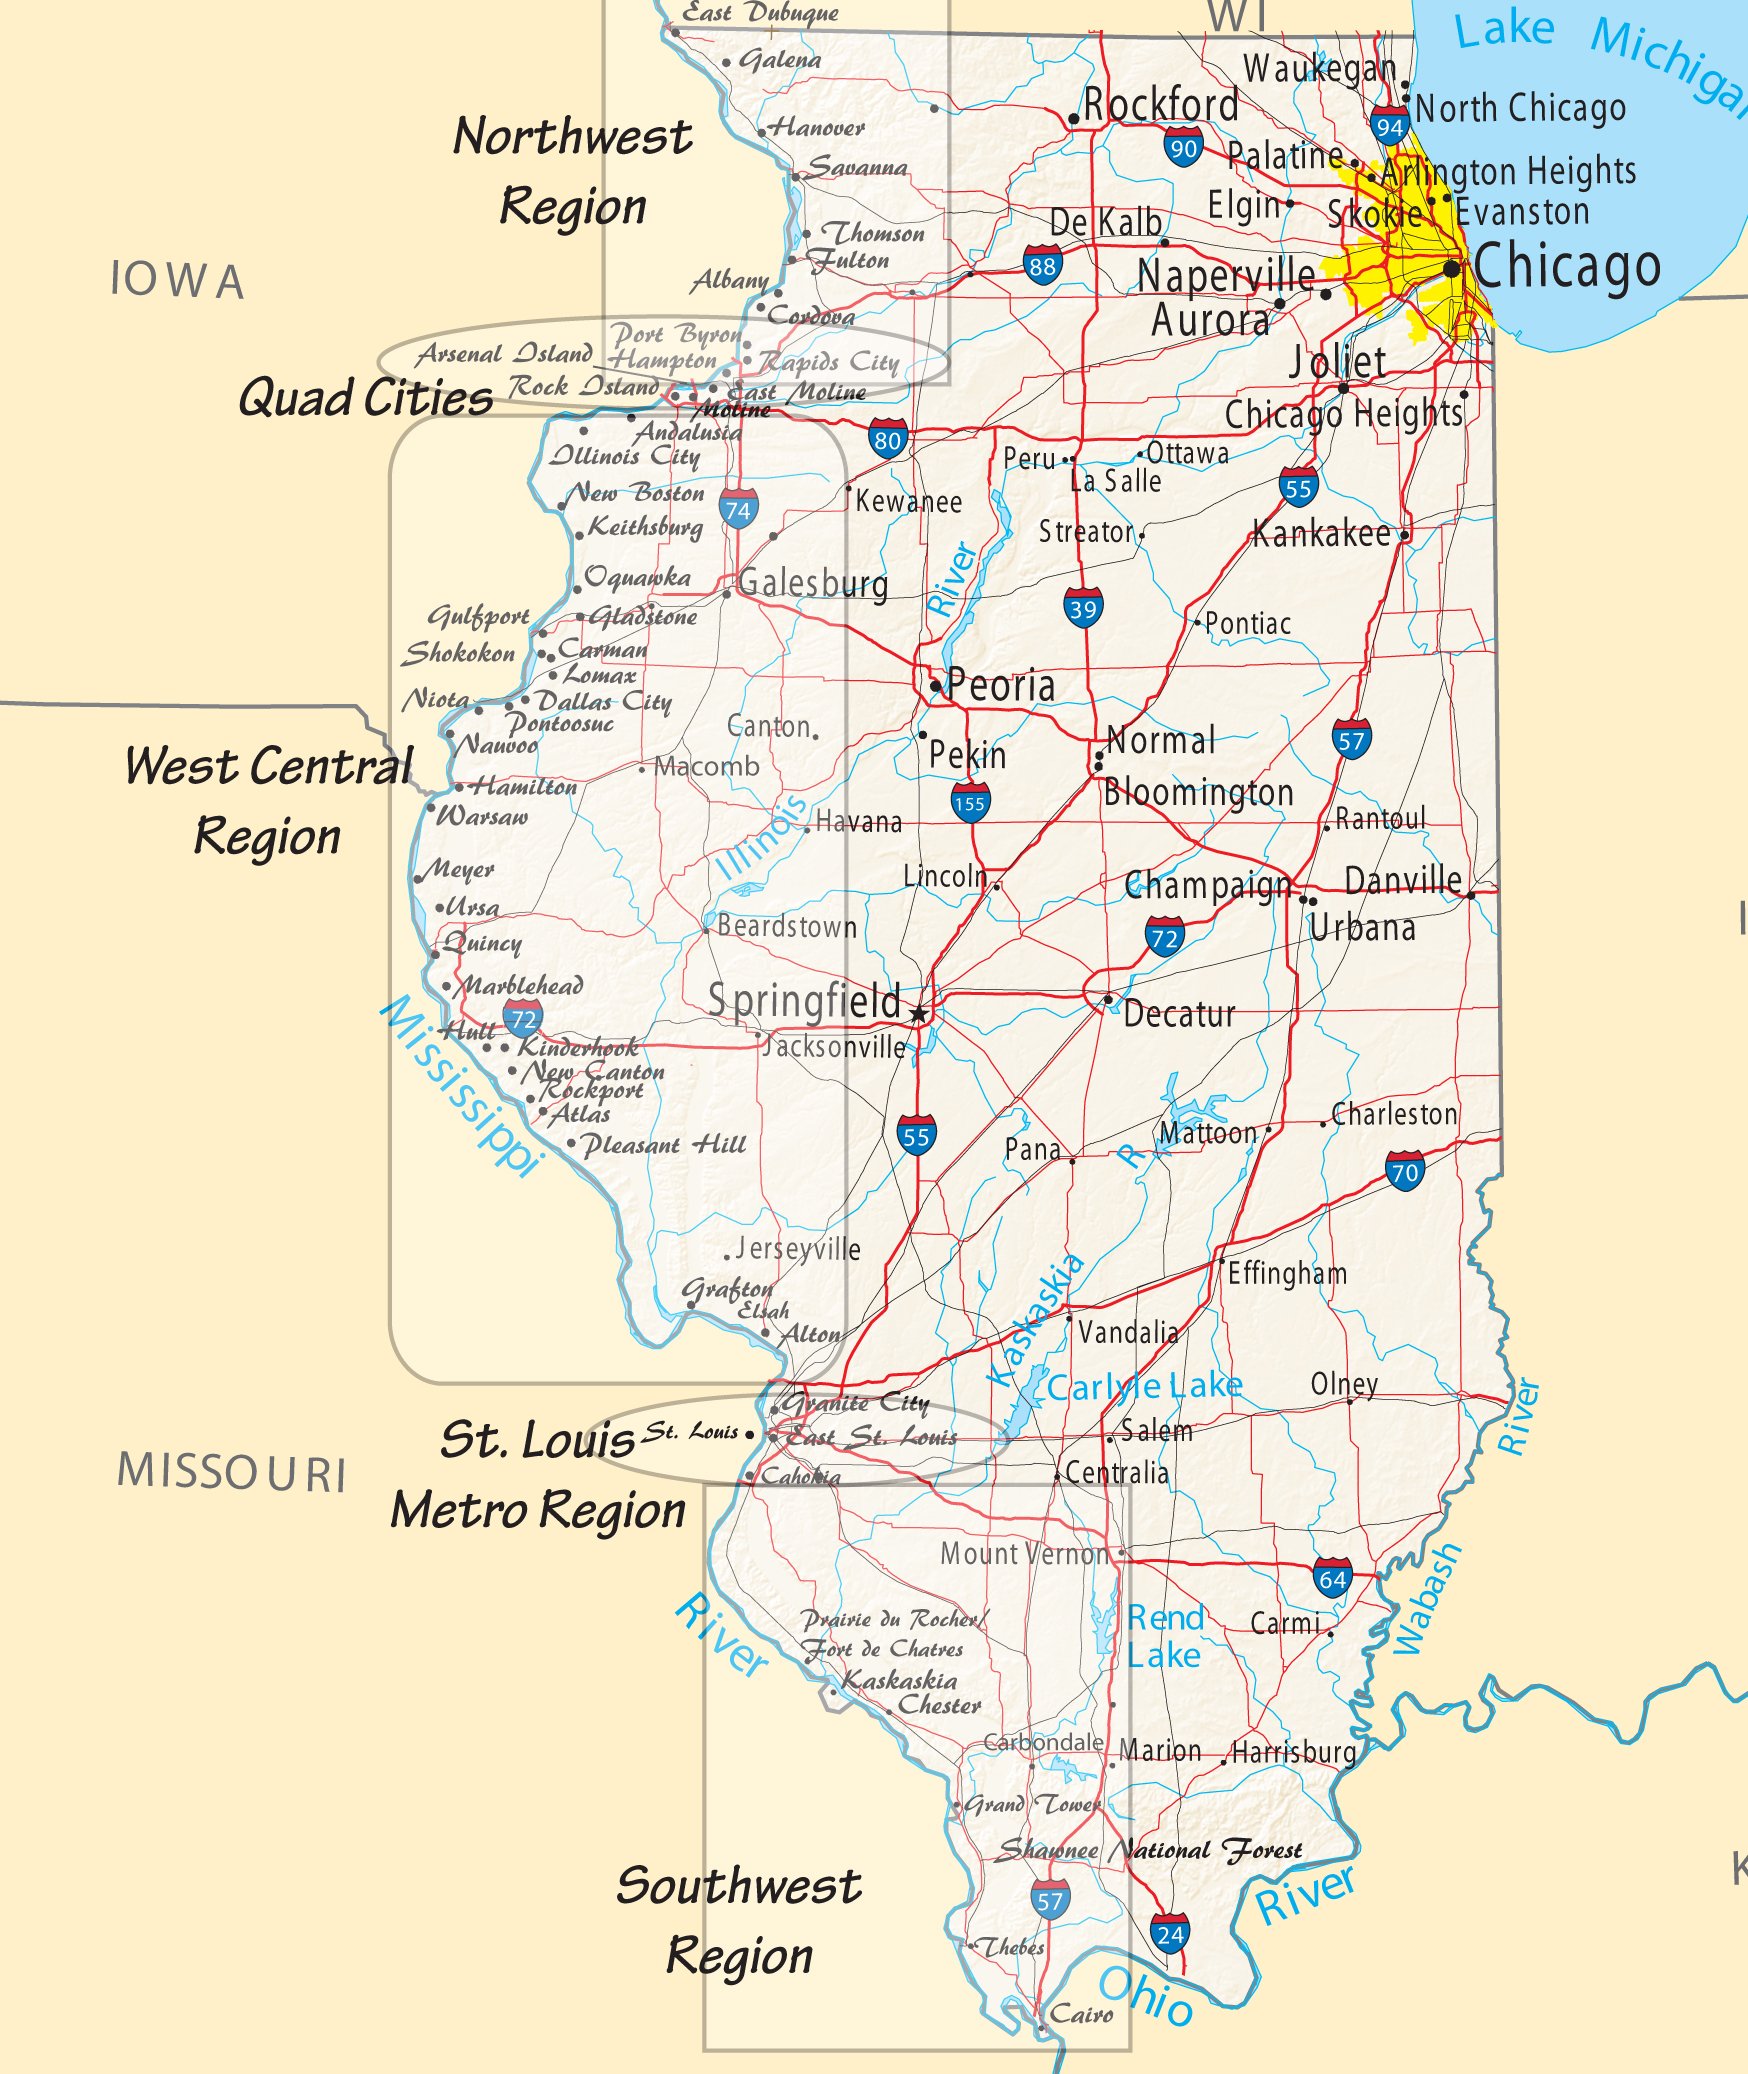 Map Of Ohio Rivers And Cities.Mississippi River Travel In Illinois